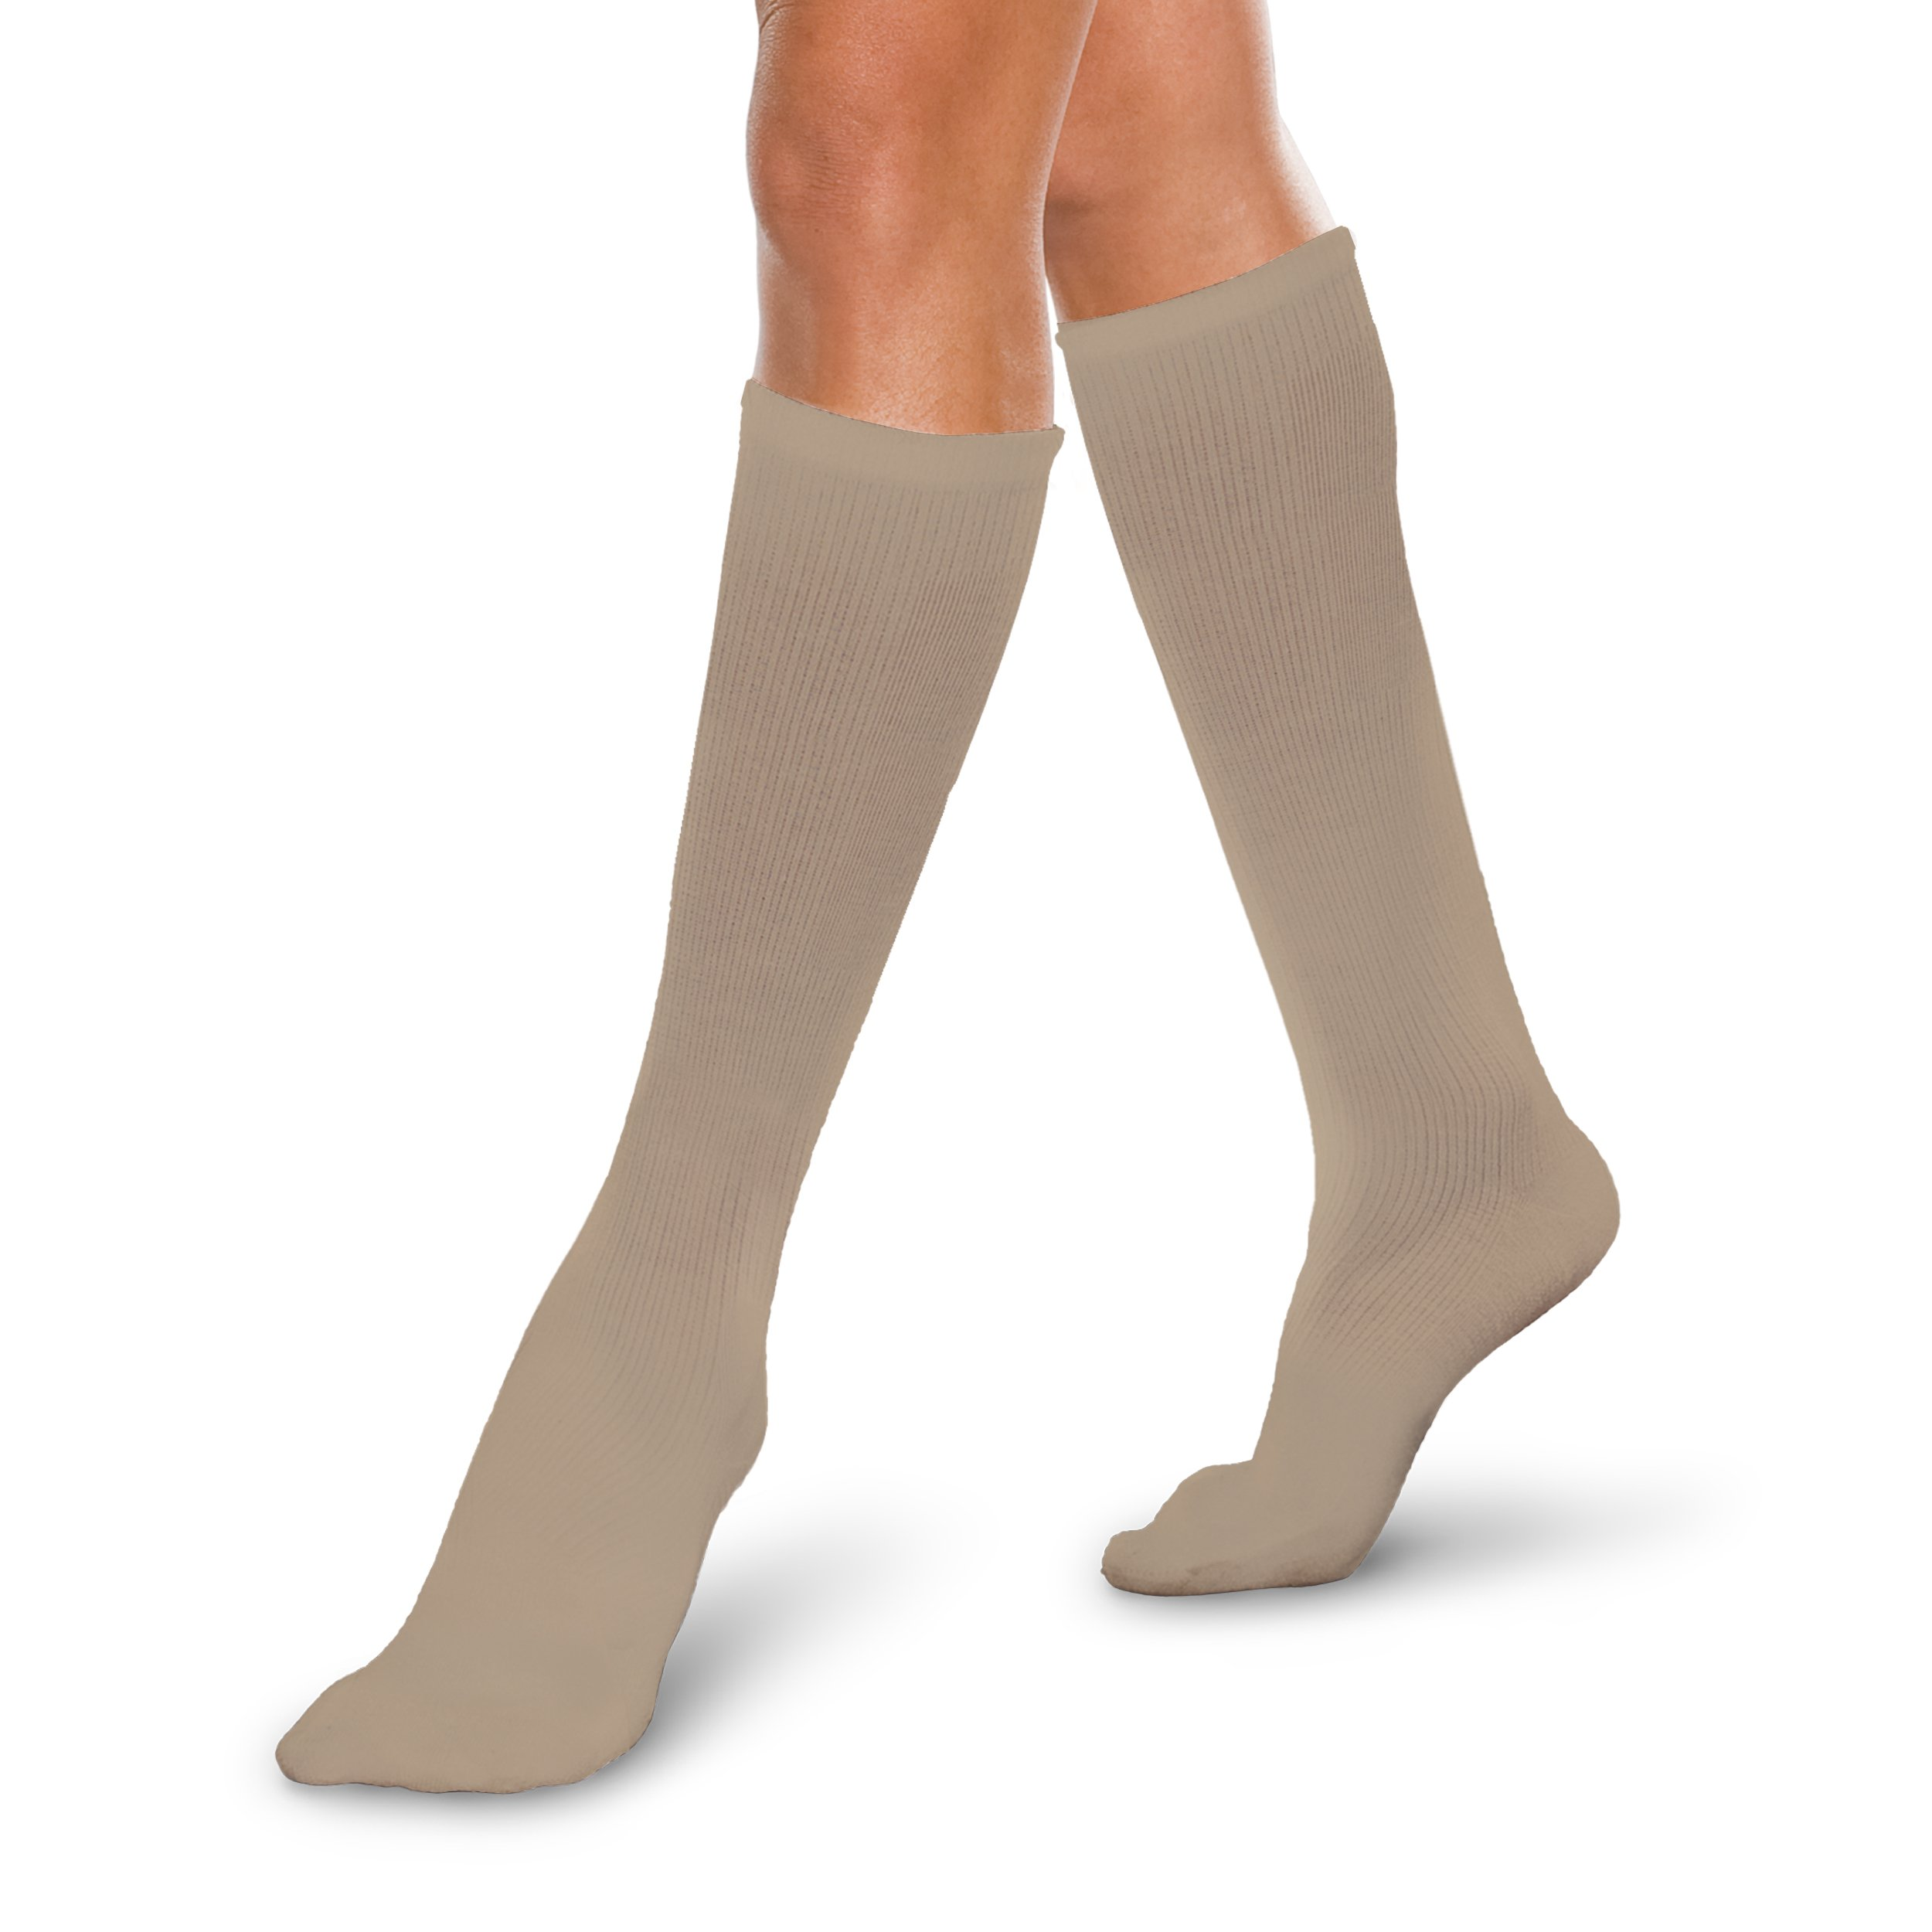 Core-Spun 30-40mmHg Firm Graduated Compression Support Knee High Socks